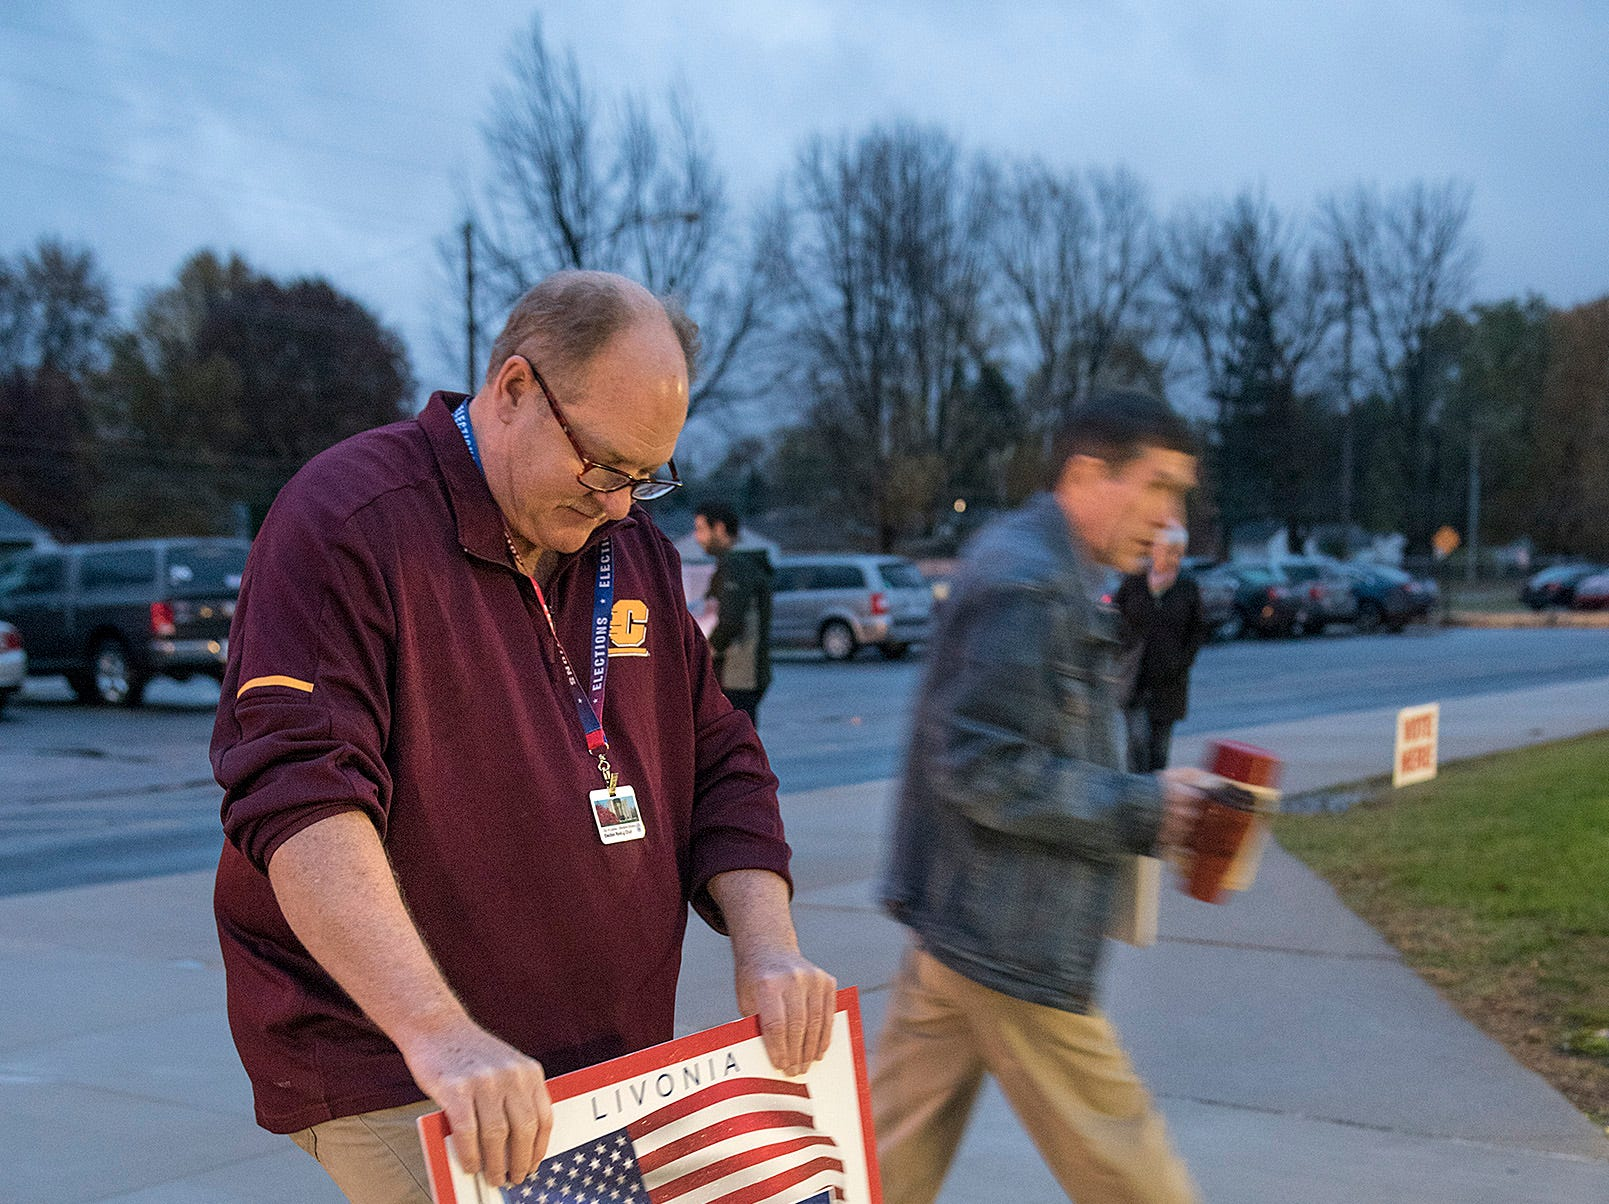 Robert Nash, husband of Livonia City Clerk Susan Nash, places signs in front of the entrance of Riley Upper Elementary School.